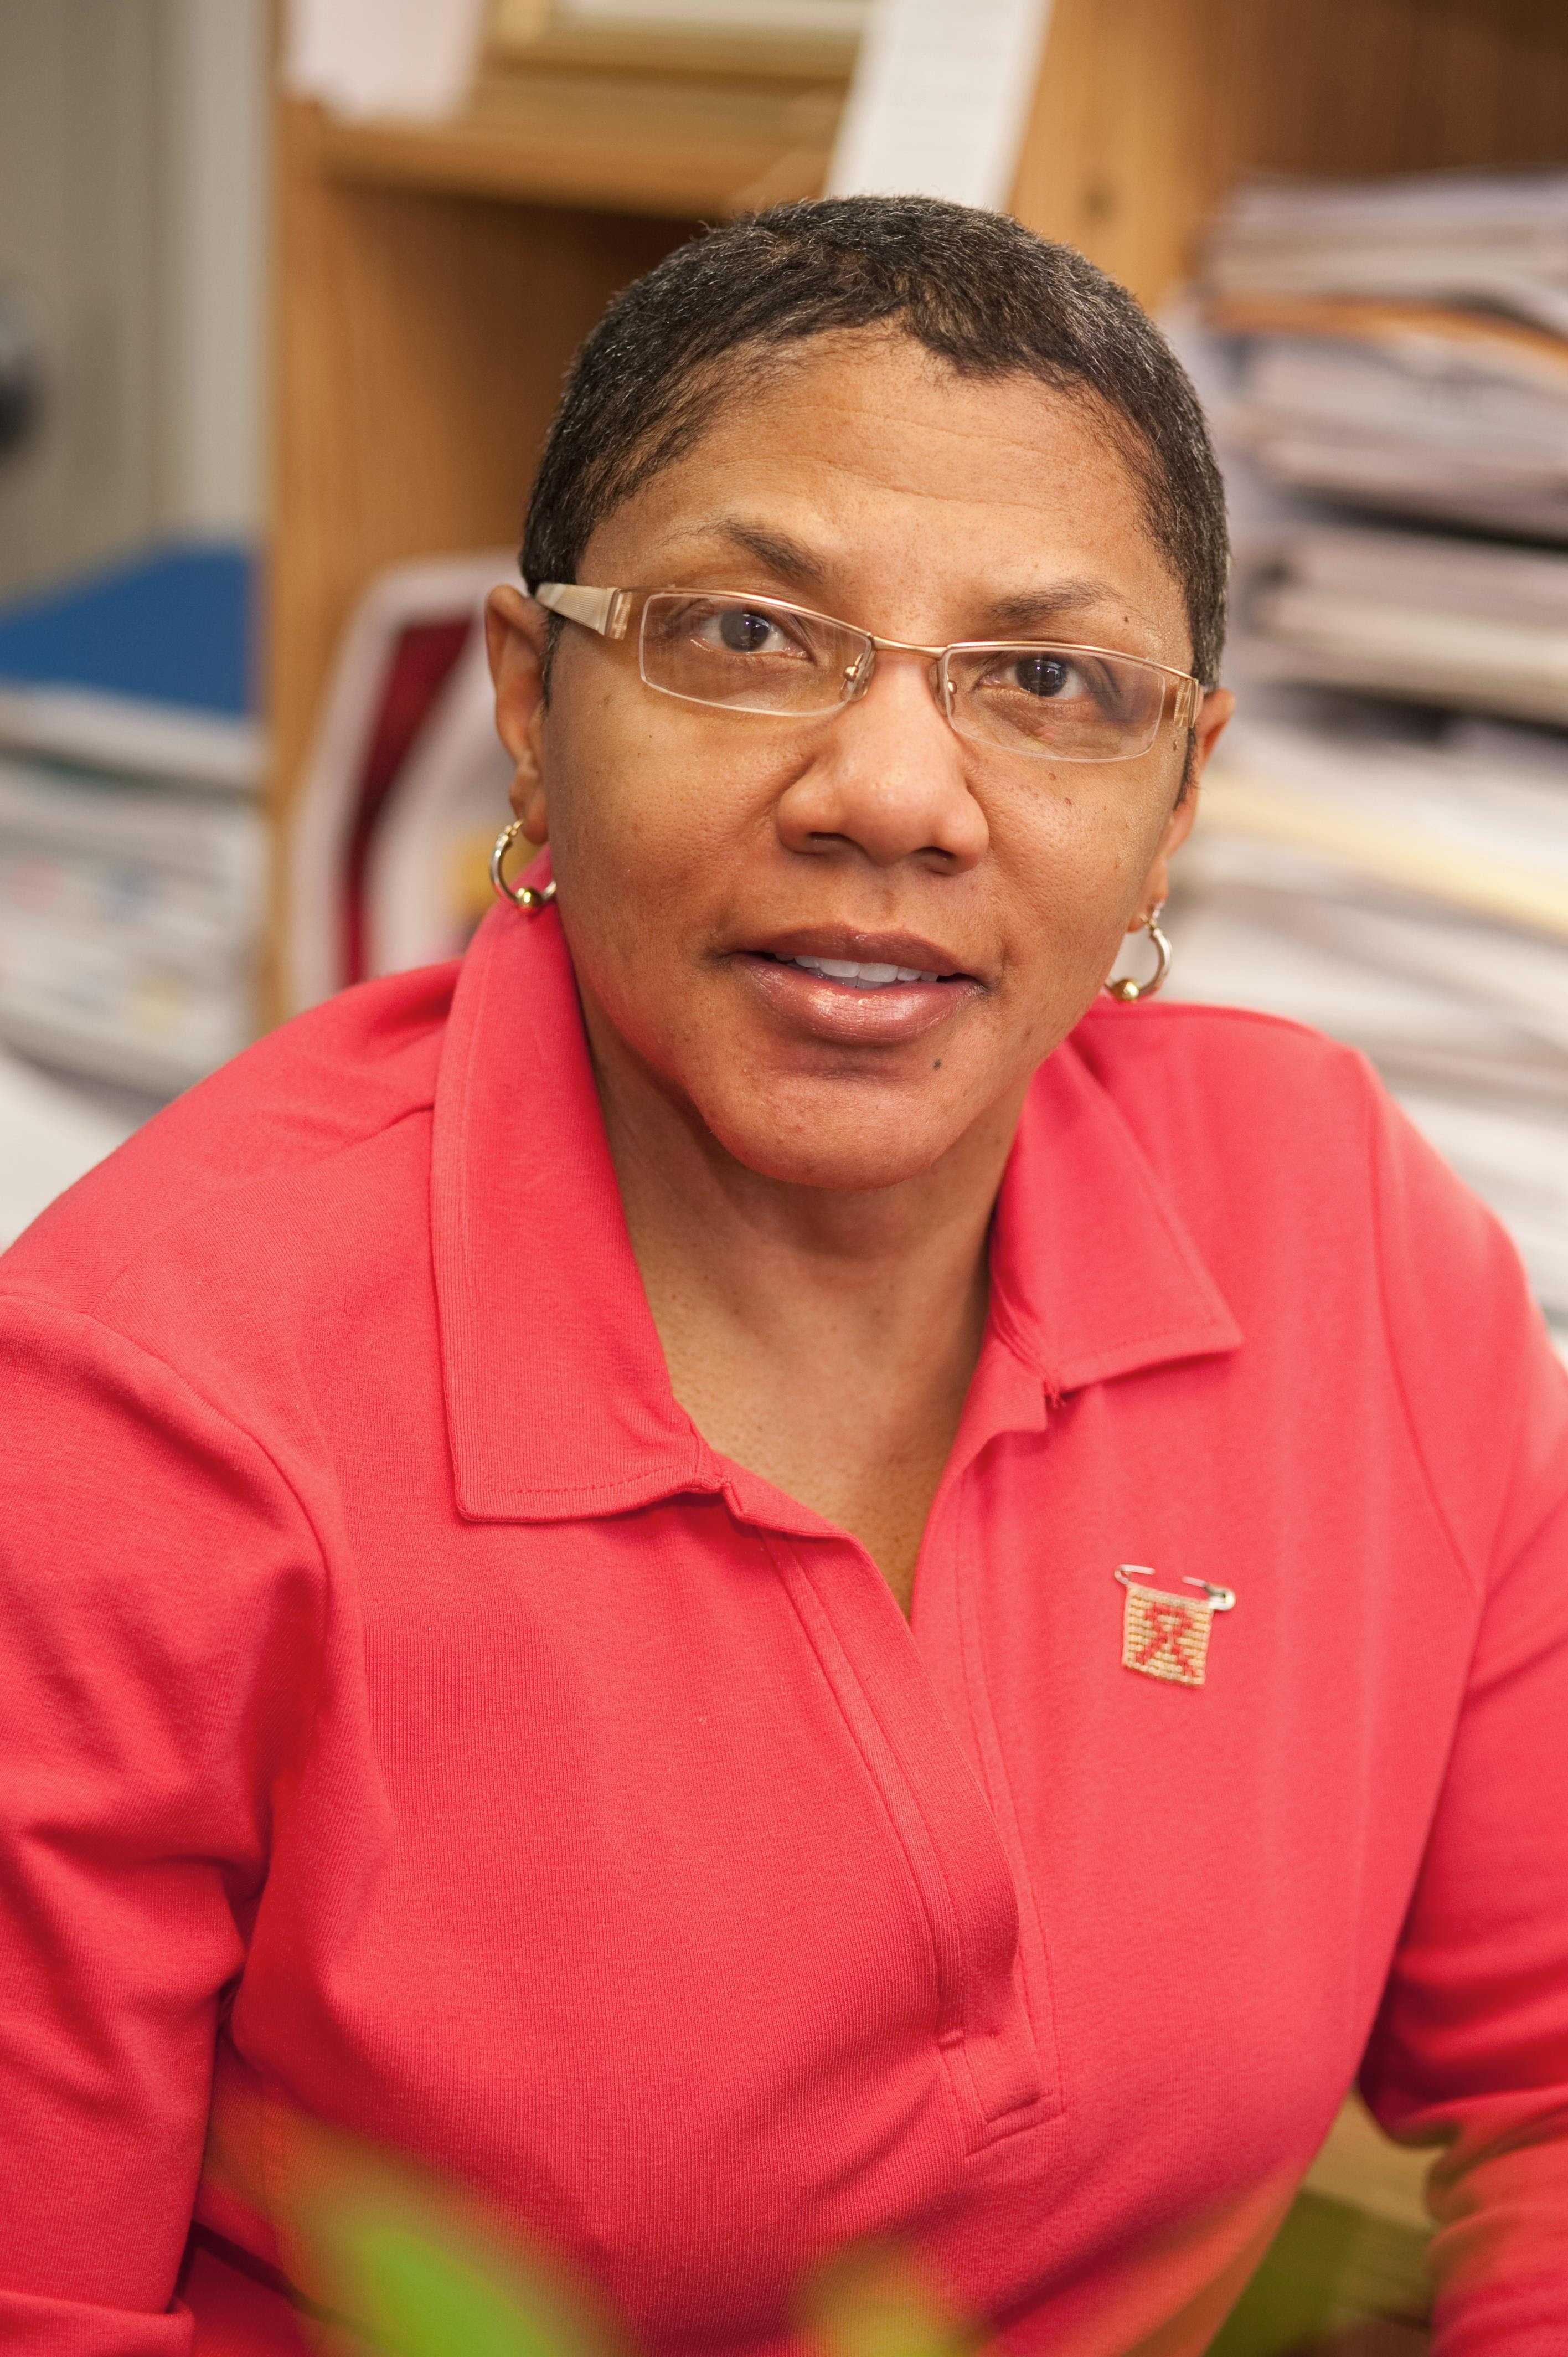 Dr. Lorece Edwards, Associate Professor, Department of Behavioral Health Sciences at Morgan